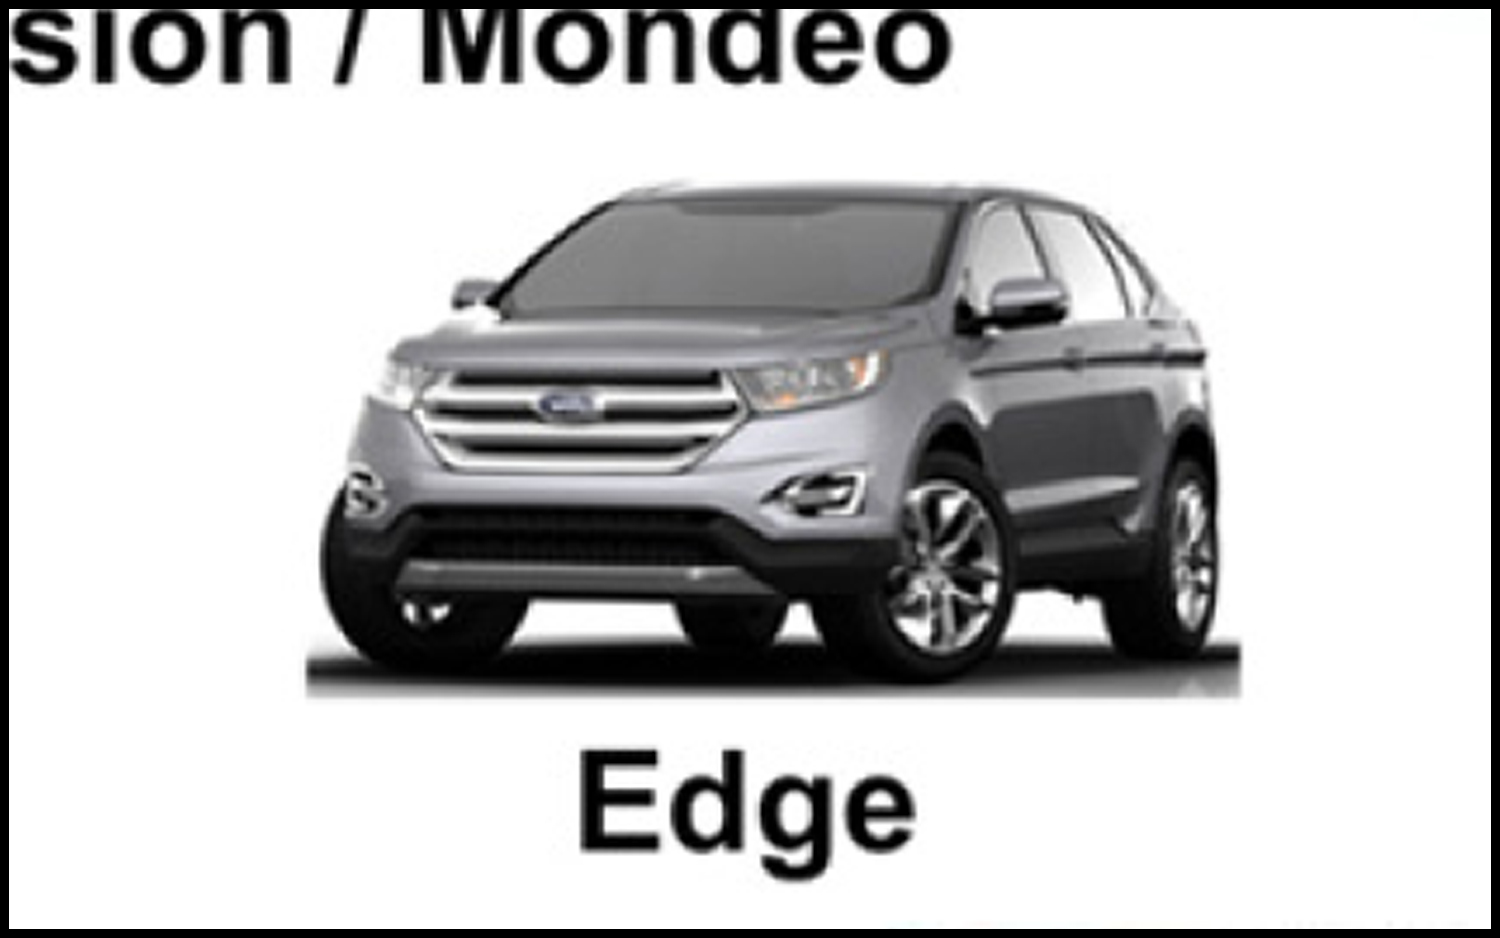 Redesigned Ford Edge Crossover Shown By Accident In Corporate Presentation